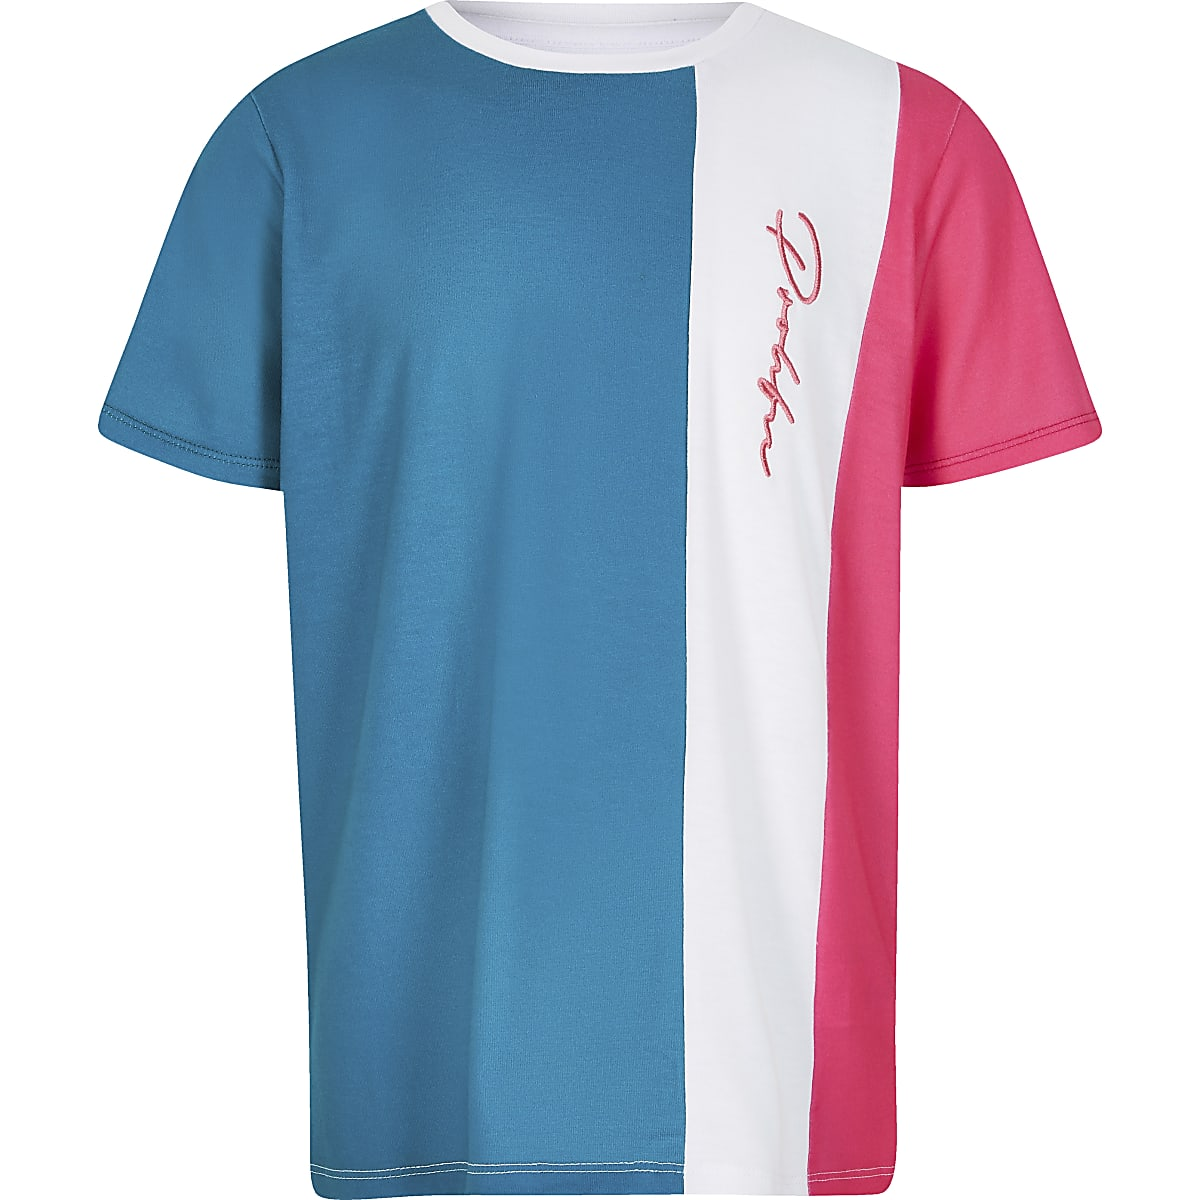 Blue colour block 'Prolific' T-shirt